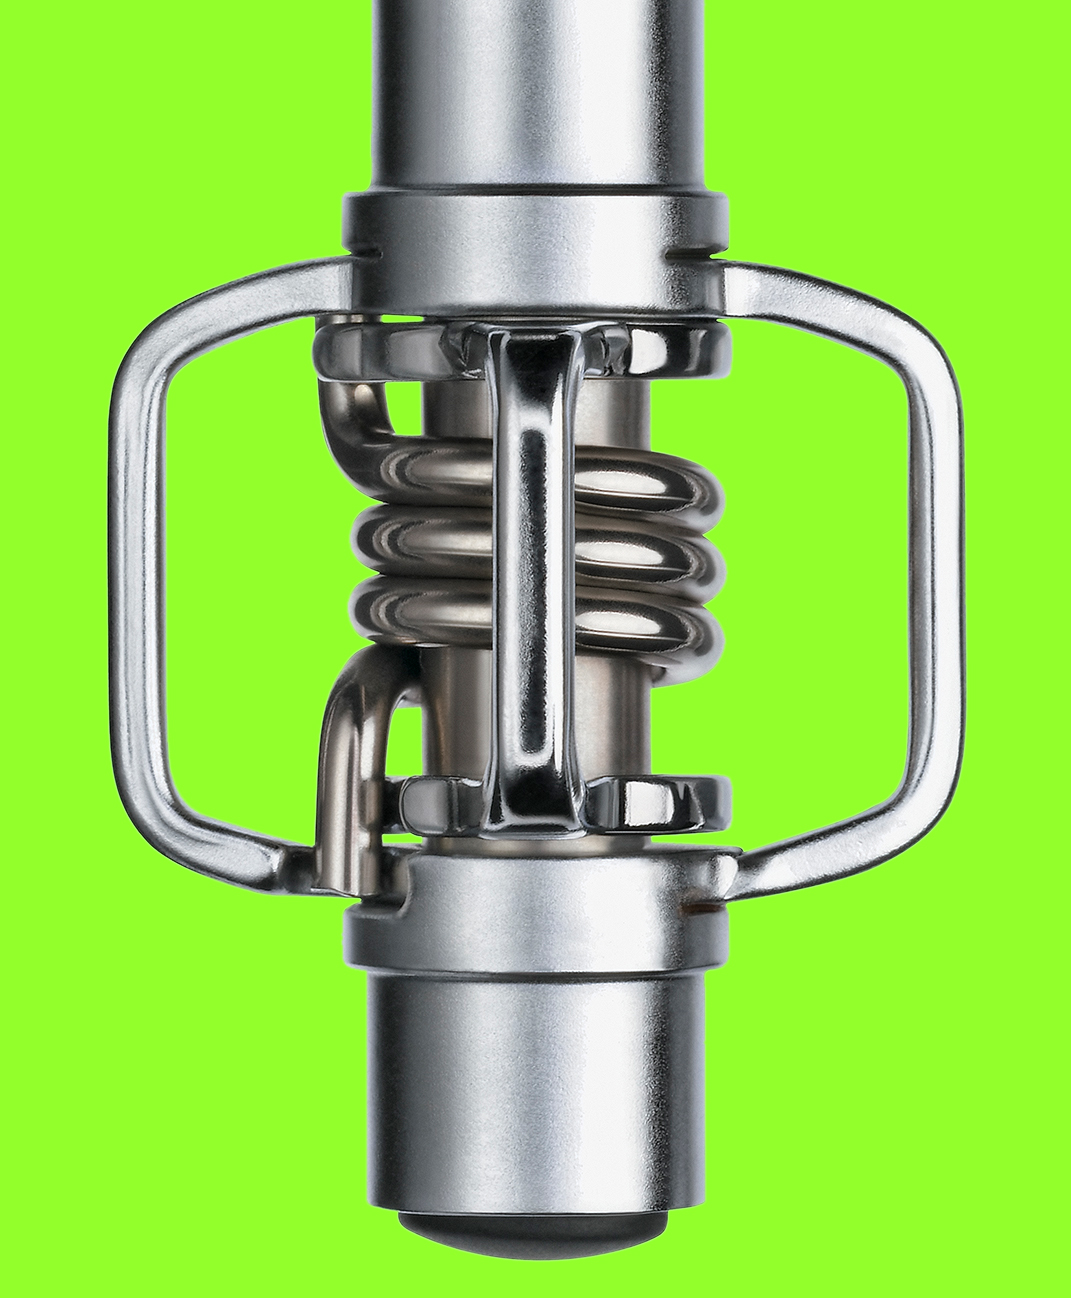 CrankBrothers_Egg_beater_1298px